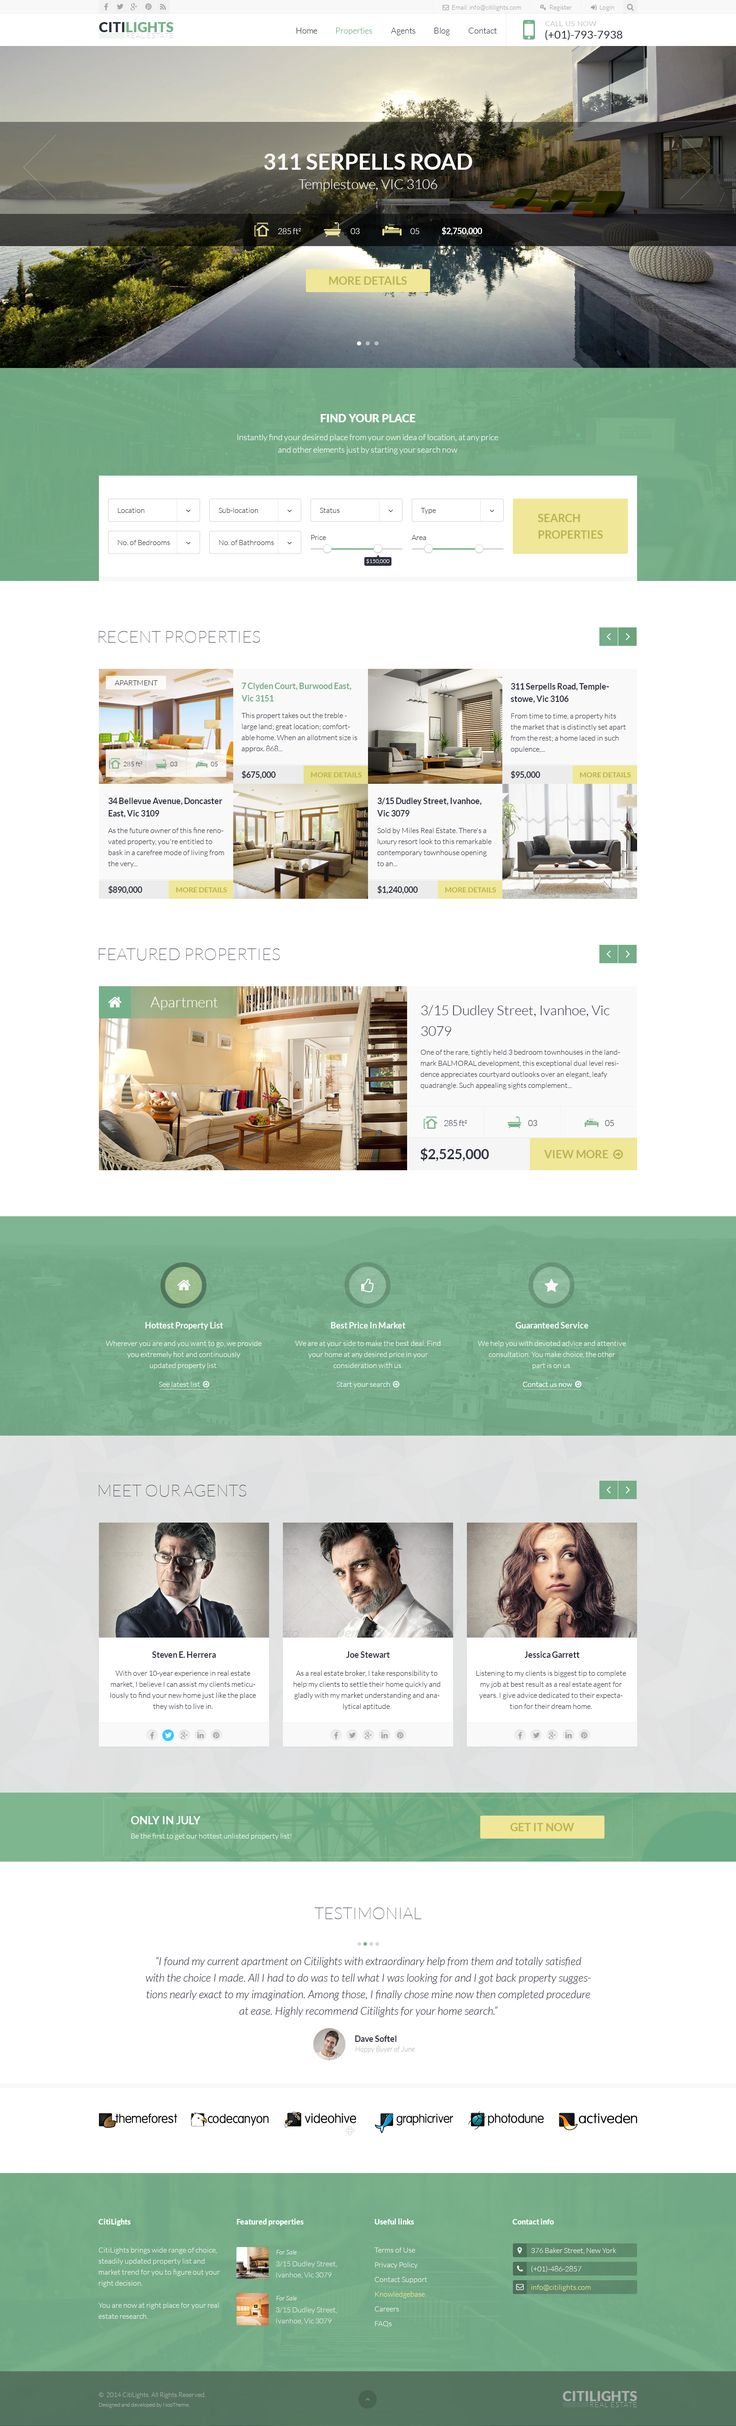 Citilights is a theme dedicately crafted for Real Estate, Estate Agent and Estate Agency websites.. Using 12 column grid system, with smart layout and clean design, this theme will certainly bring an elegant and professional look to your Real Estate site. http://themeforest.net/item/citilights-real-estate-psd-template/8488256?ref=nootheme #realestatetemplate #realestatetheme